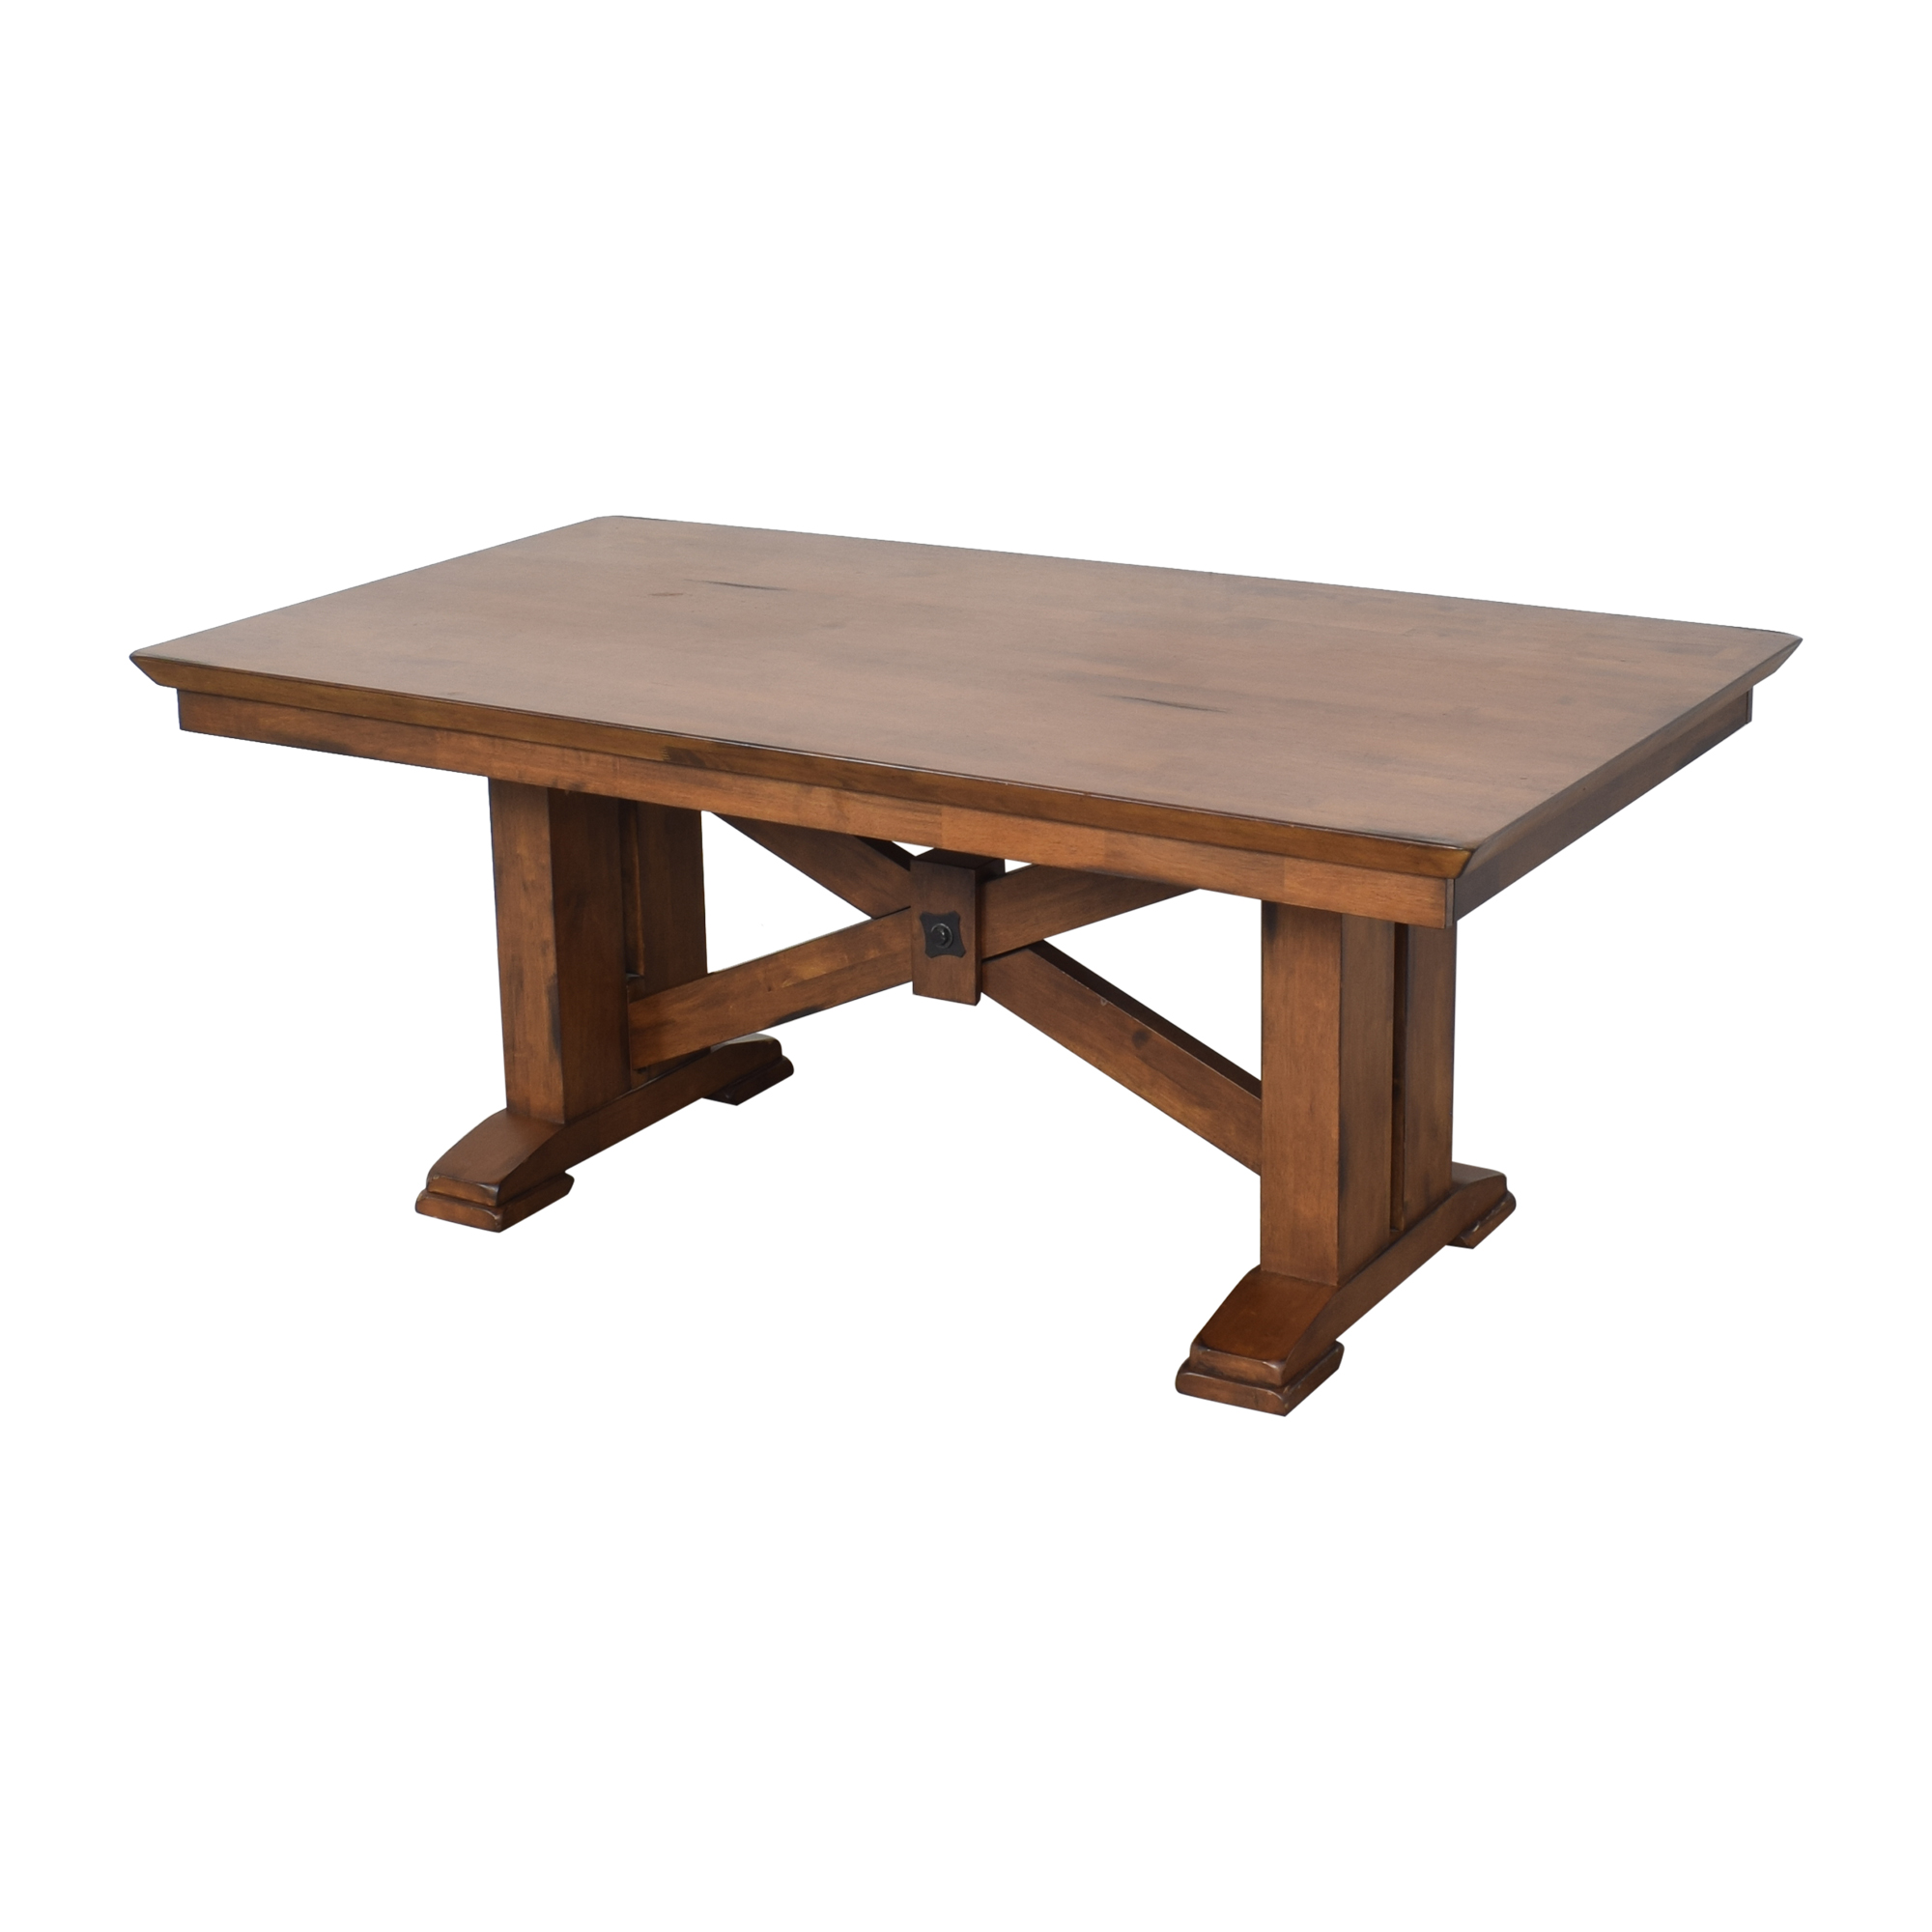 Farmhouse Style Dining Table used